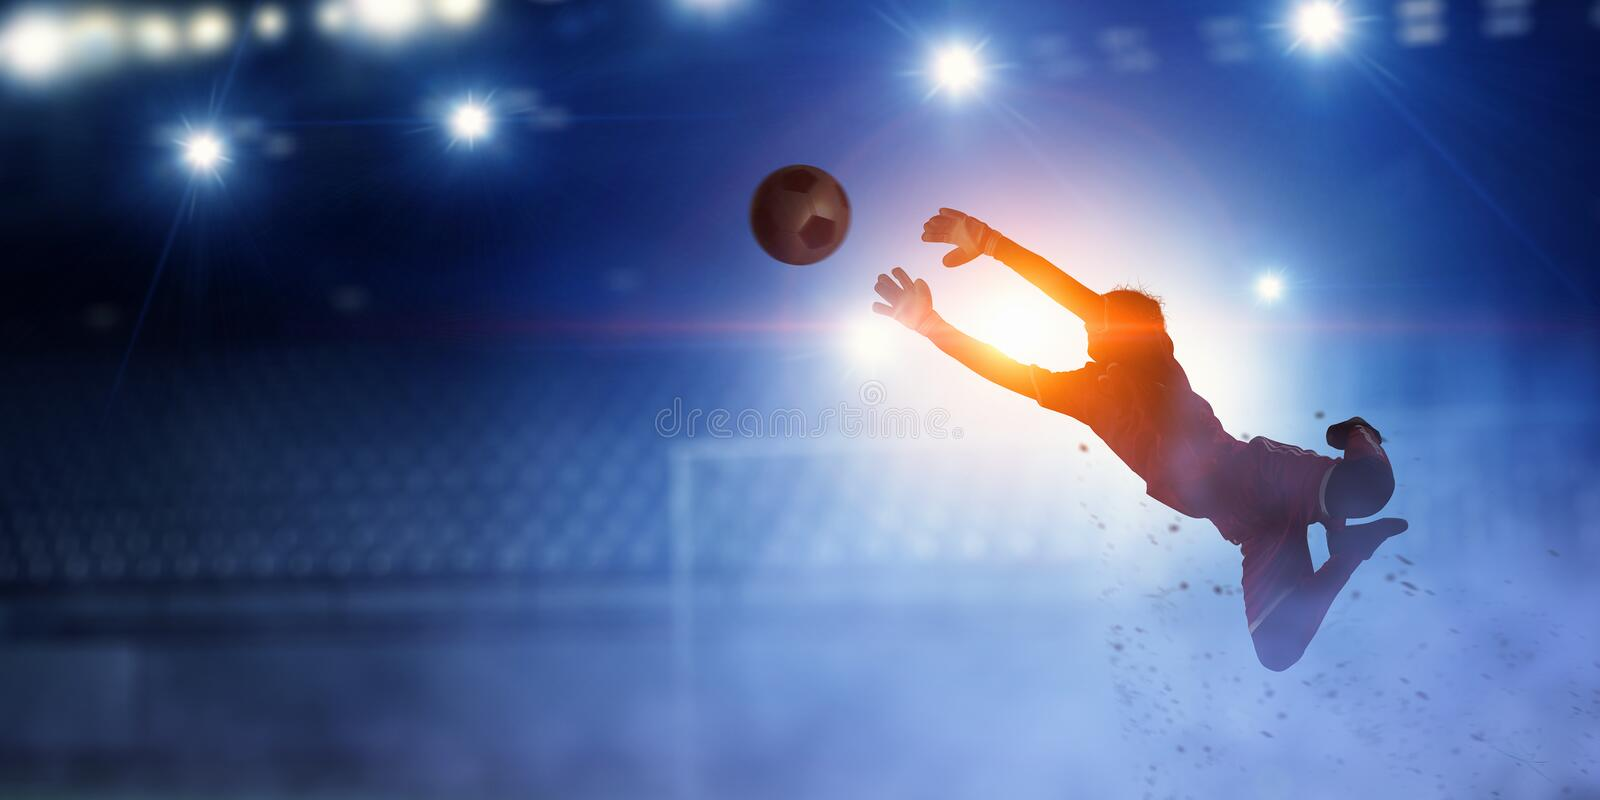 It is game time . Mixed media royalty free stock photo